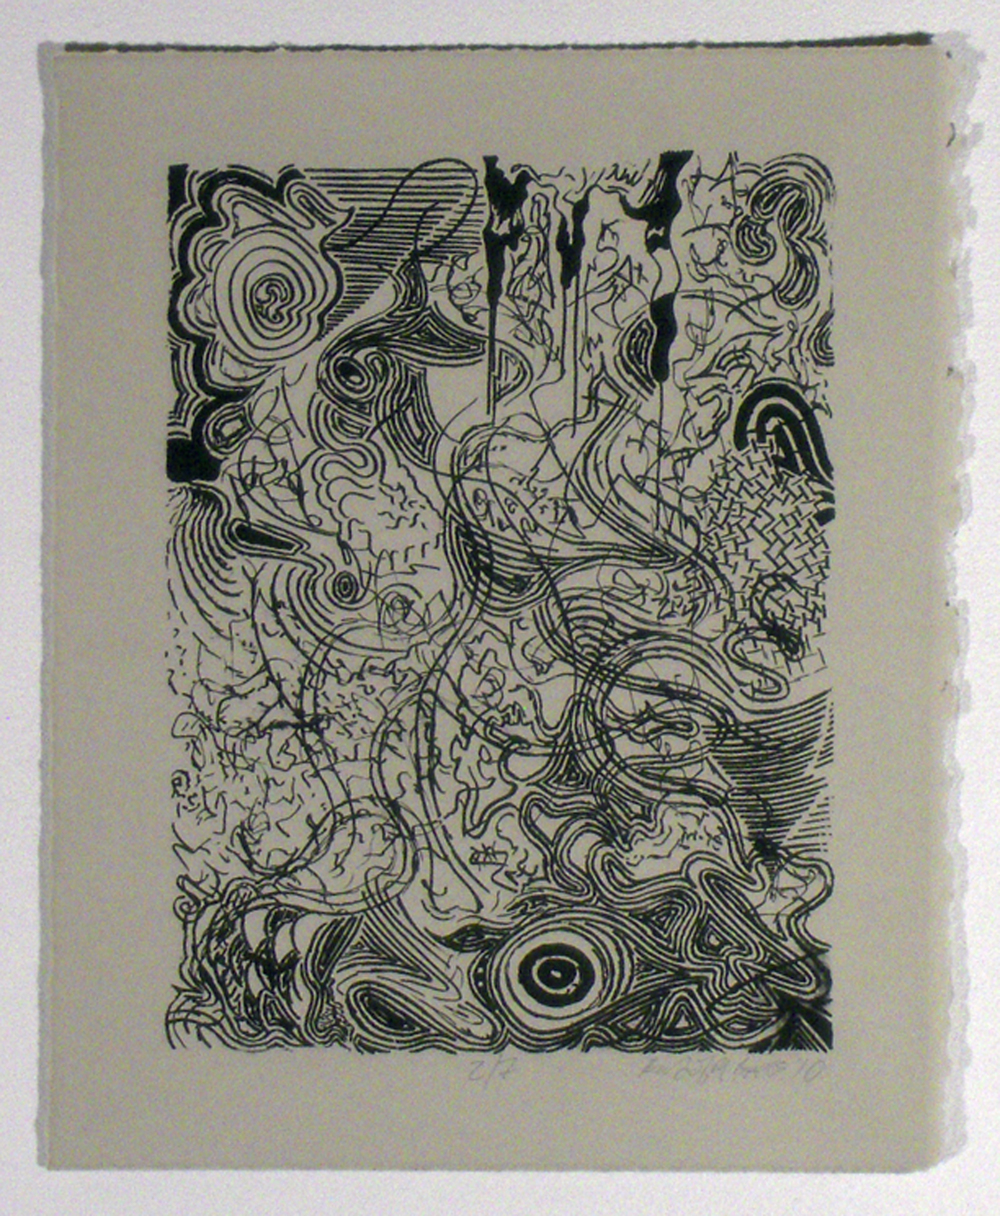 Sight of Sound Suite, 2 of 2, Lithograph, 10%22x8%22, 2010.jpg